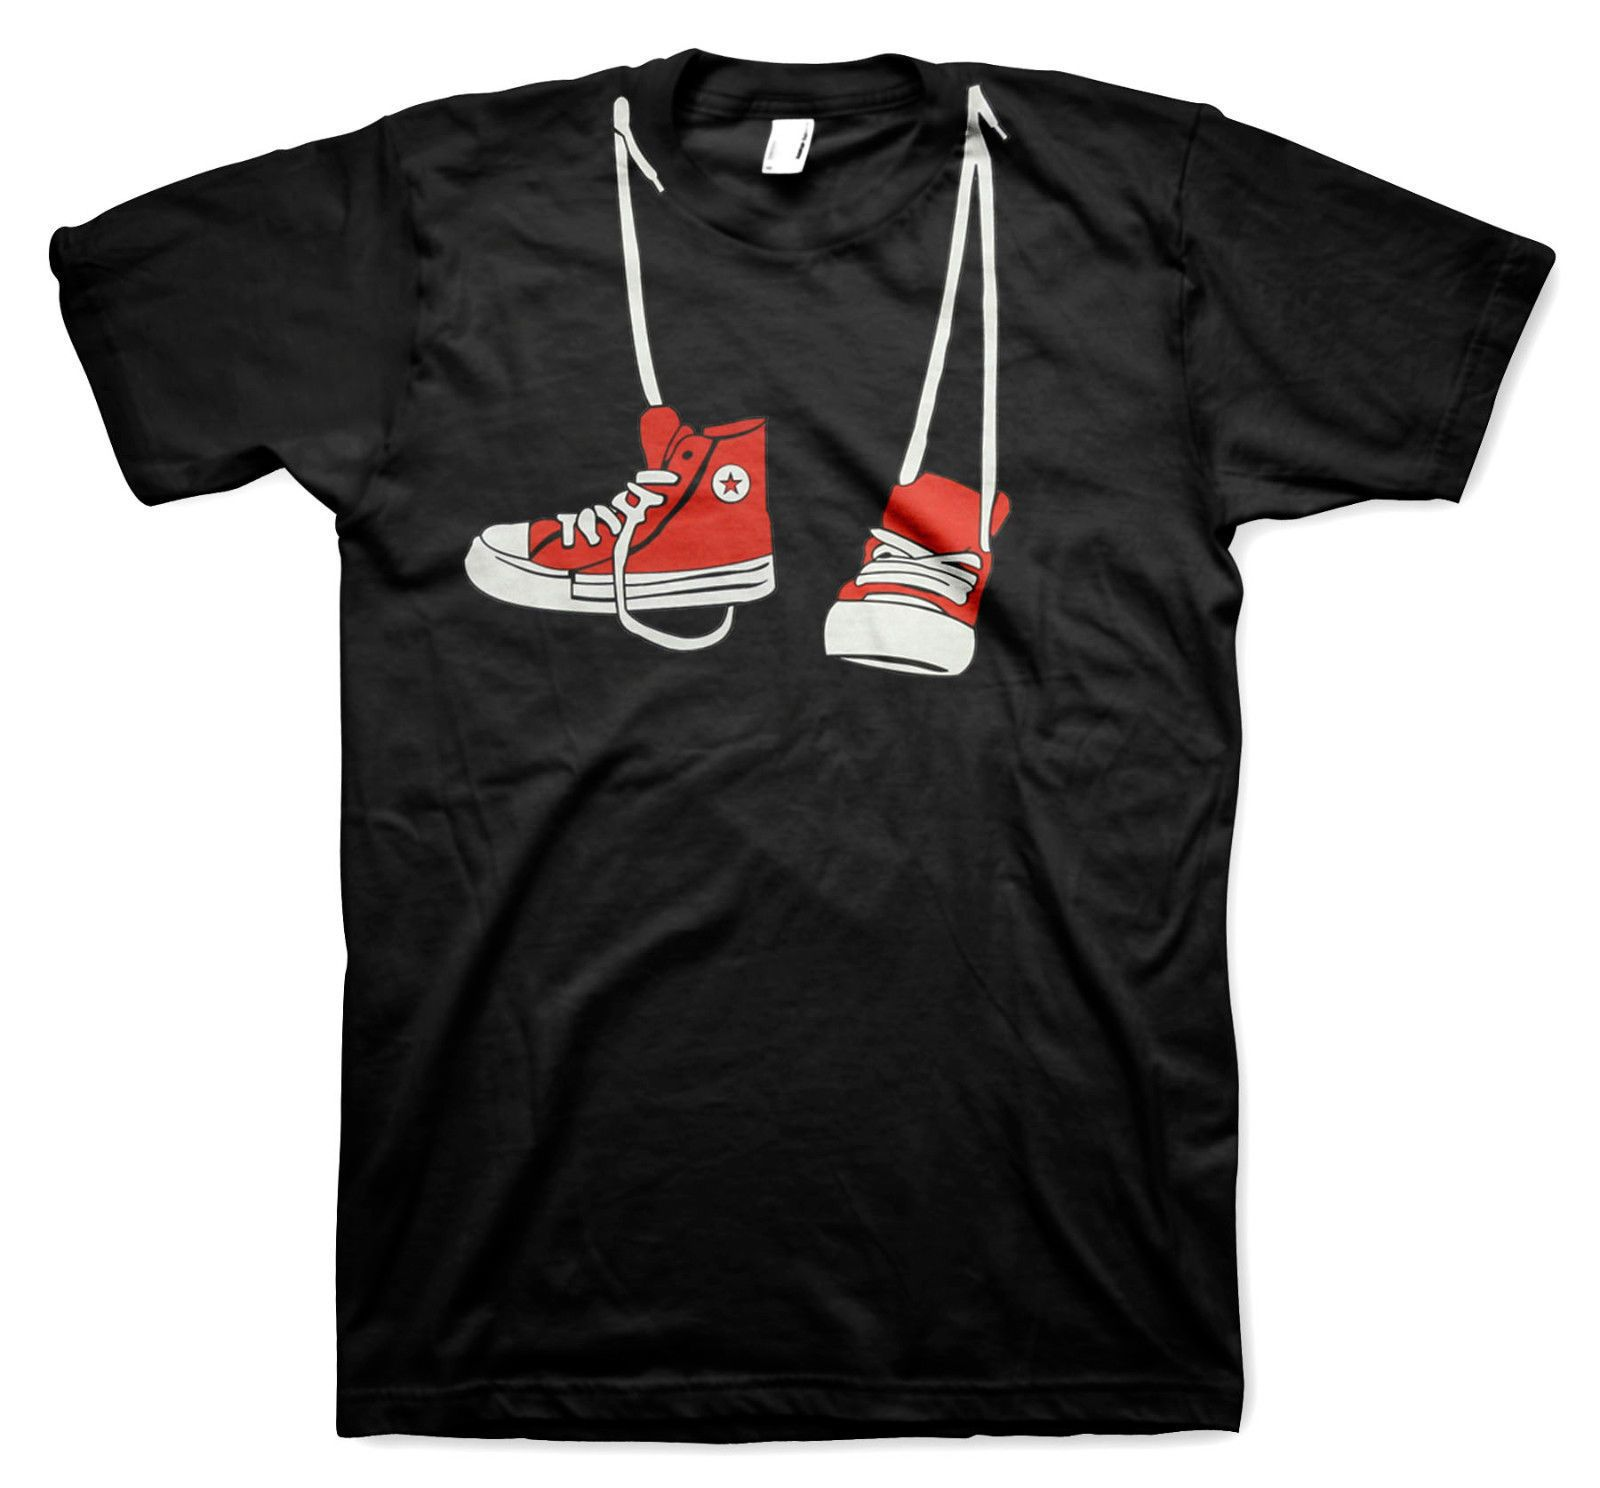 a360430d Cool Red Converse Shoes Hanging Around Neck T-shirt. Please feel free to  contact us with any questions regarding the item. Thank you for shopping  with us!